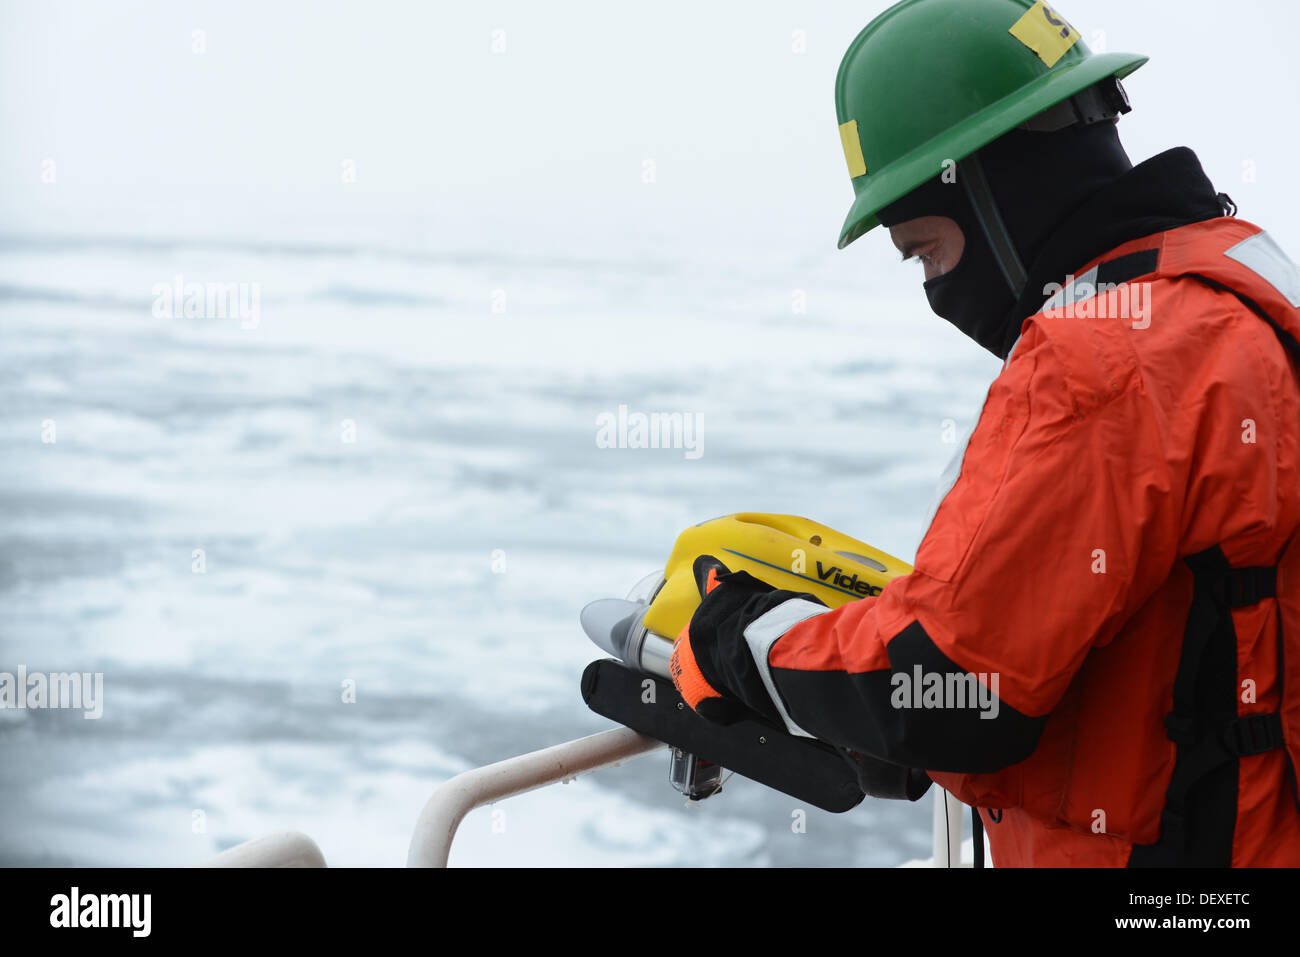 Jason Story, a project manager with the Coast Guard Research and Development Center, prepares to deploy a Coast Guard Marine Safety and Security Team remotely operated vehicle aboard the Coast Guard Cutter Healy during a simulated spilled oil response and - Stock Image